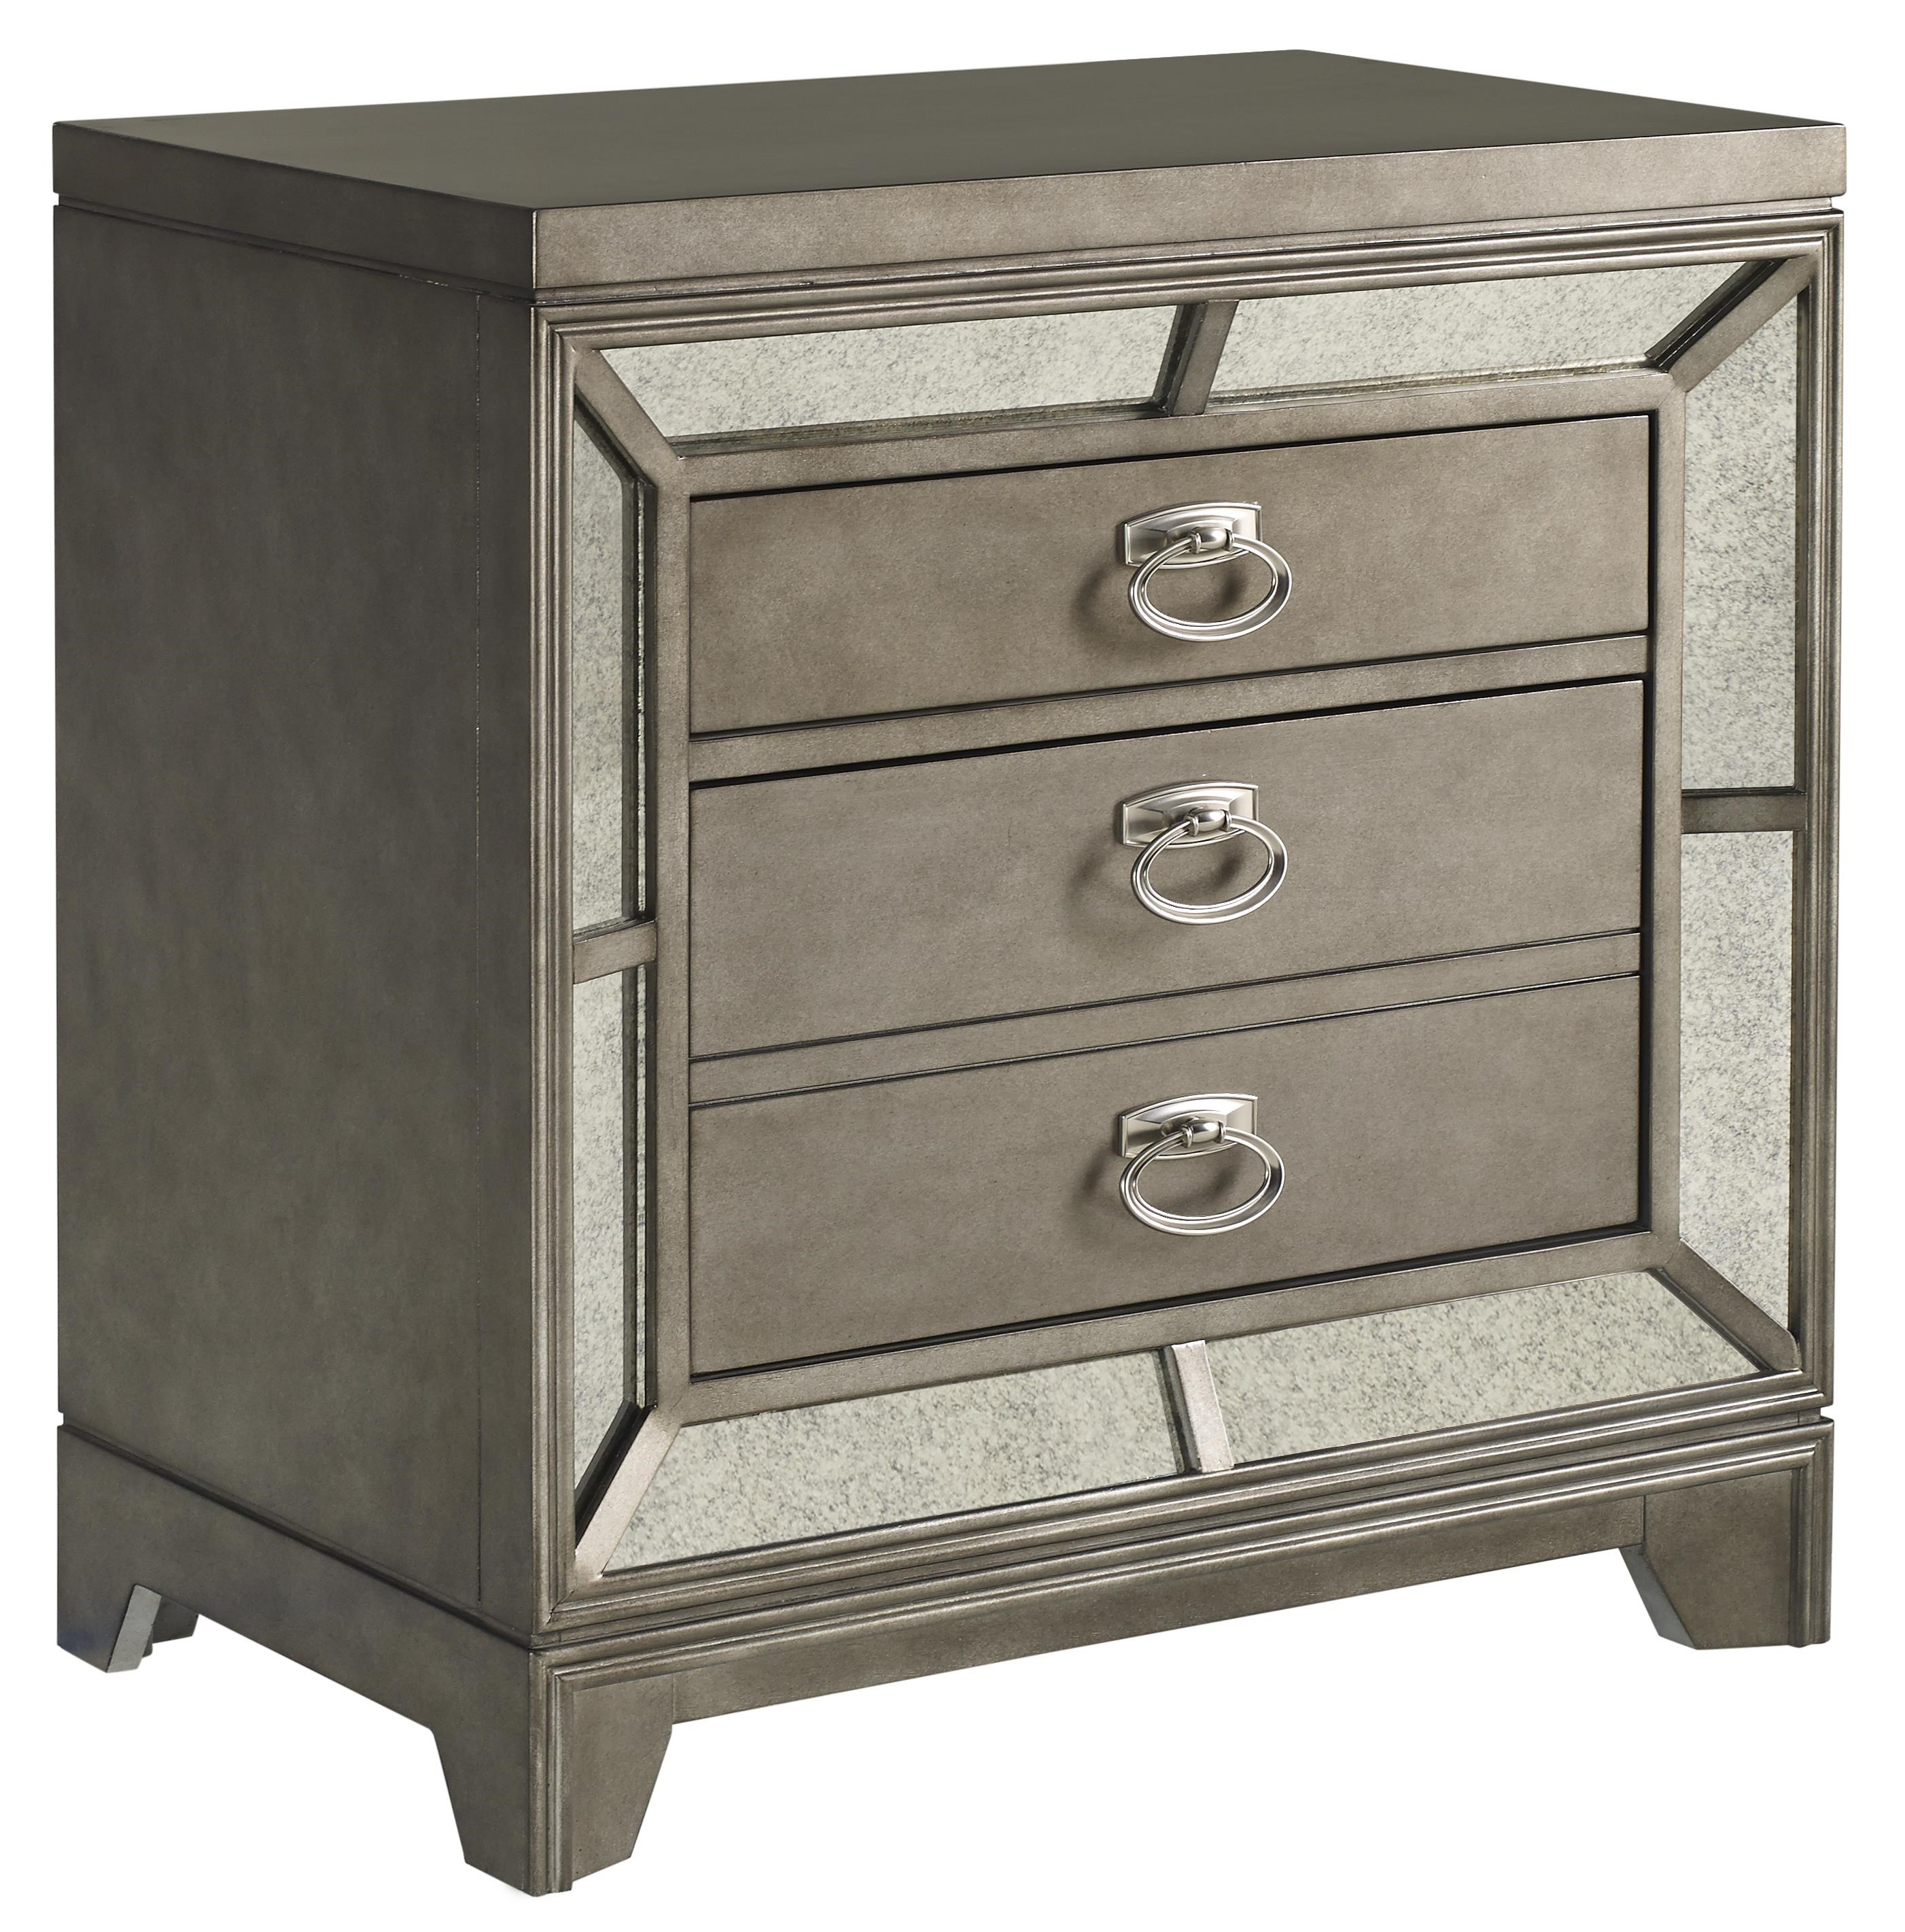 Superbe Avalon Furniture Lenox 2 Drawer Nightstand With Built In USB Charging